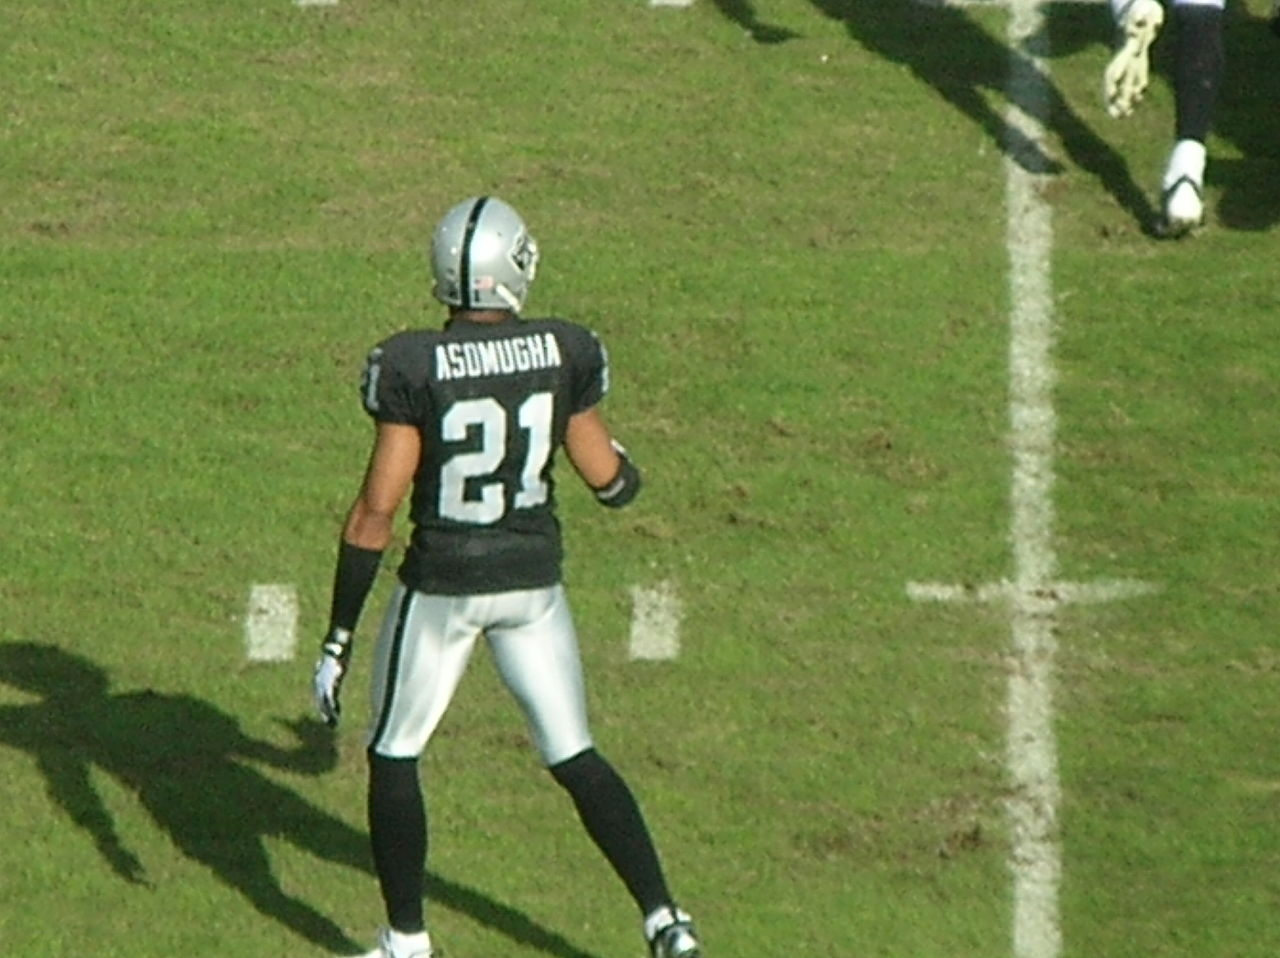 90898614b File Nnamdi Asomugha at Falcons at Raiders 11-2-08 2.JPG - Wikimedia ...